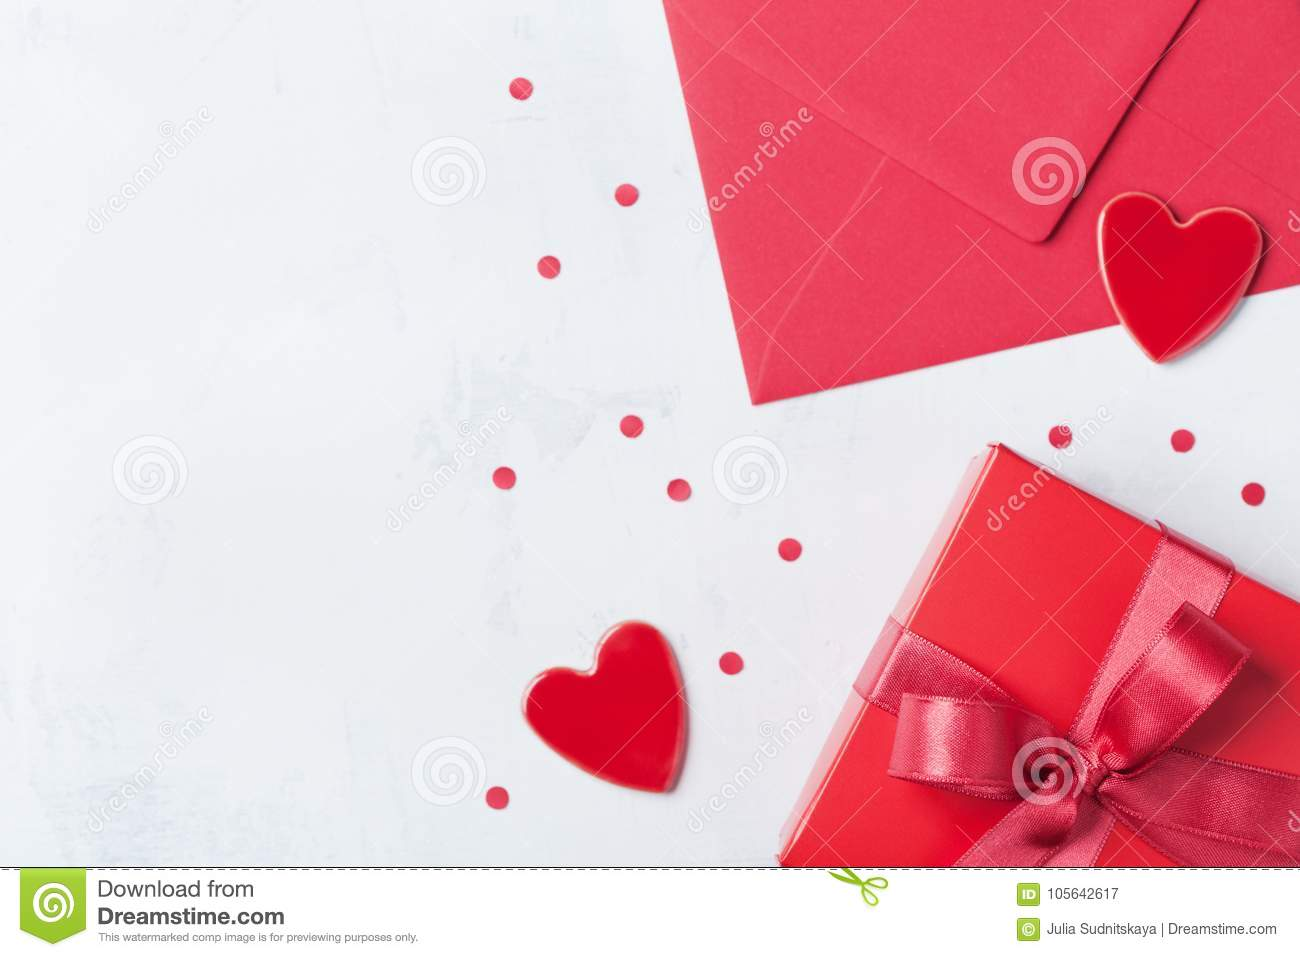 Gift, envelope and red heart on white table for greeting on Valentines Day. Flat lay.